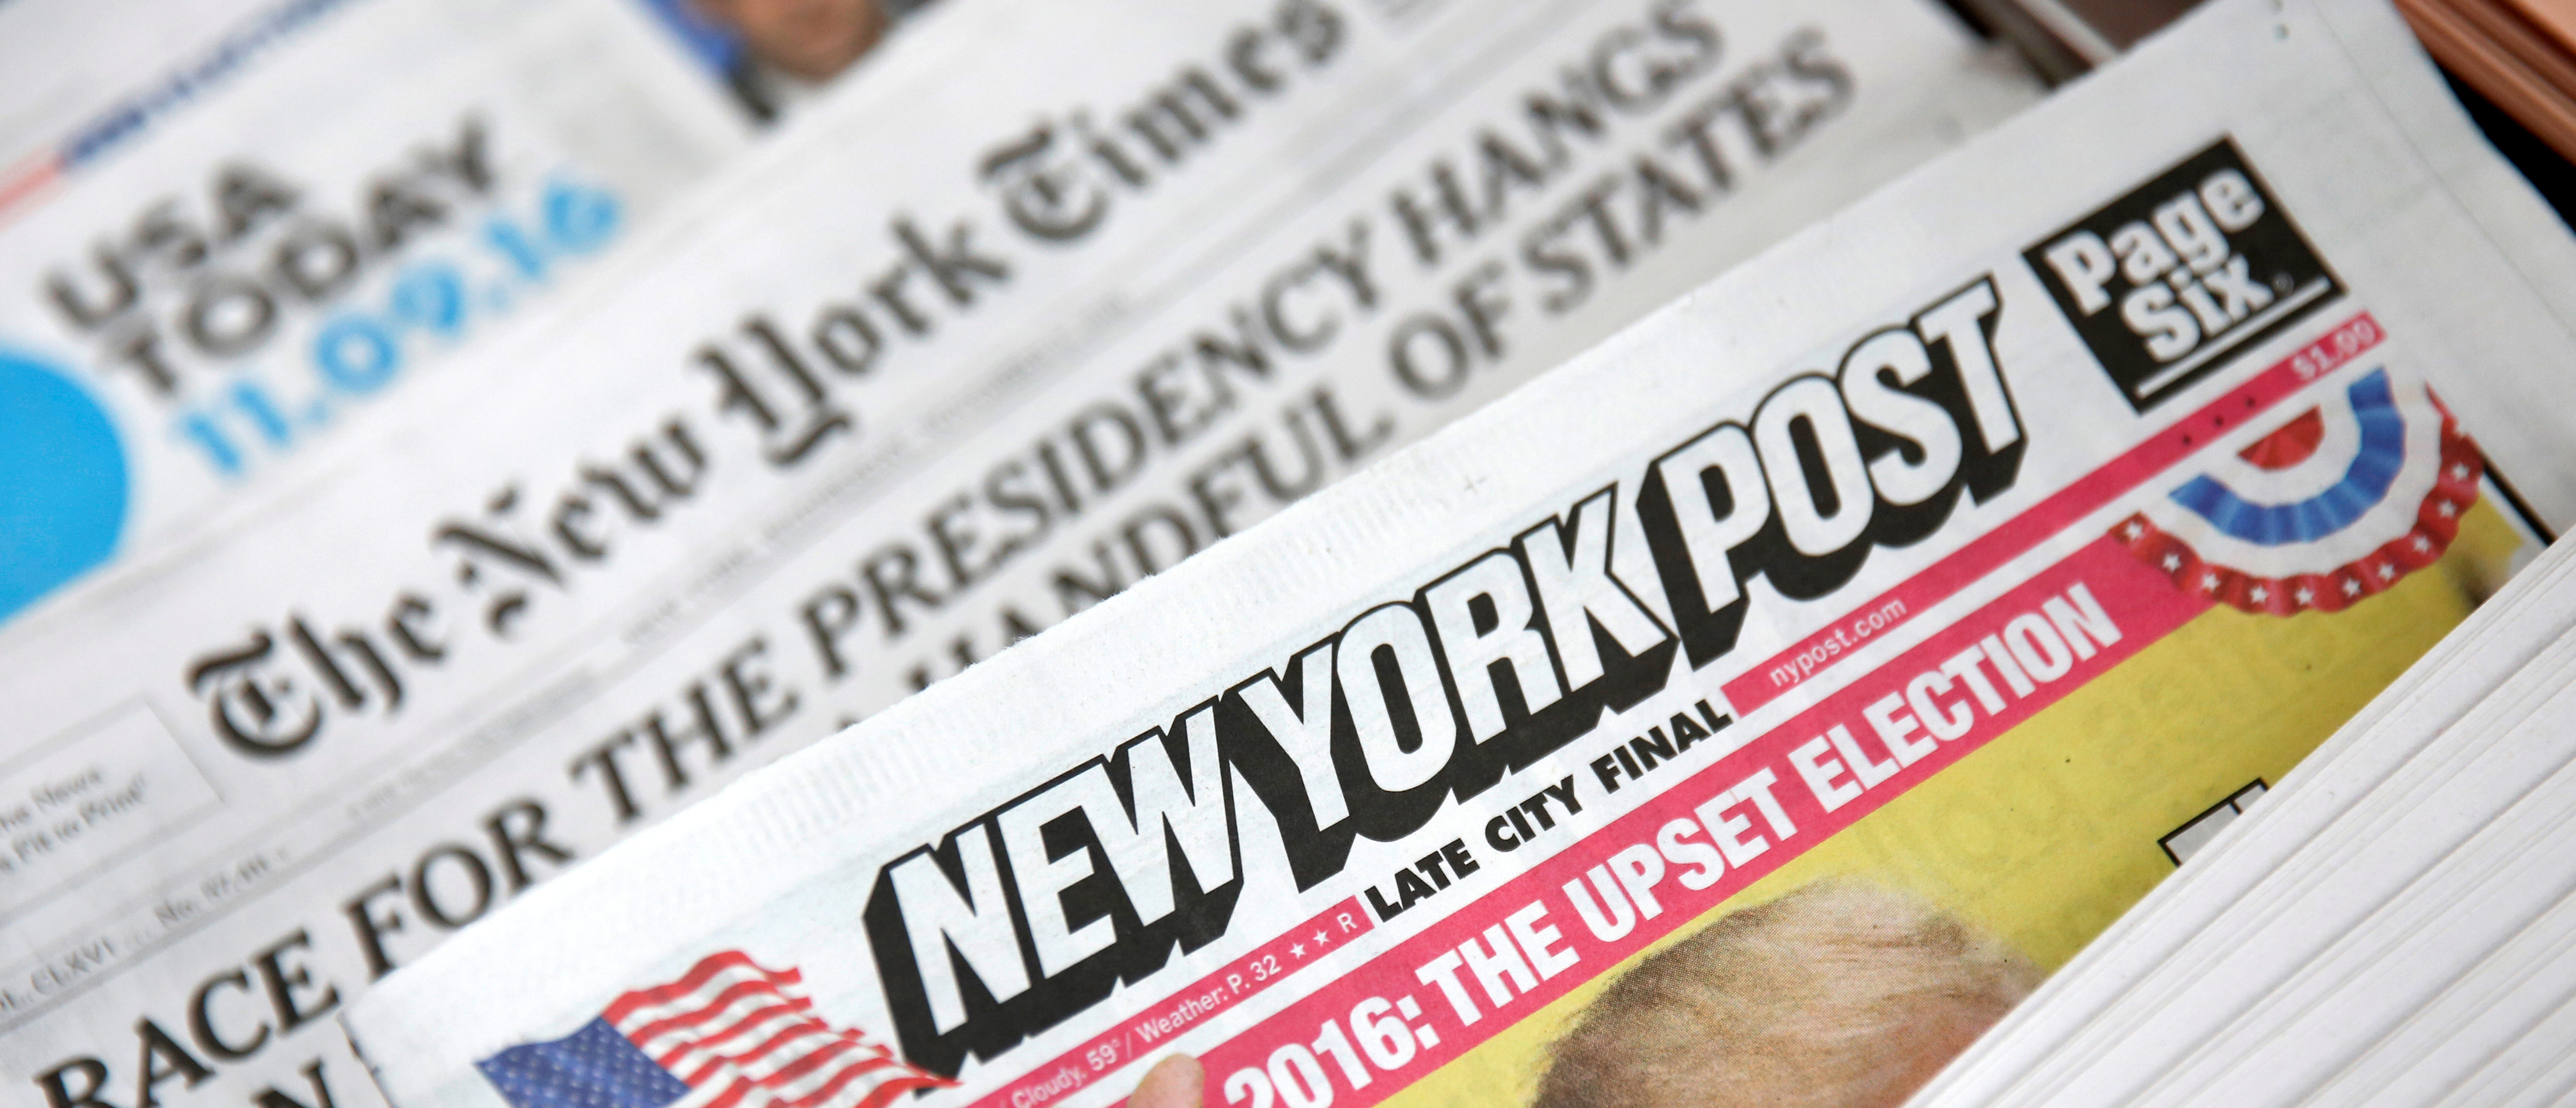 The cover of the New York Post newspaper is seen with other papers at a newsstand in New York U.S., November 9, 2016. REUTERS/Shannon Stapleton - S1AEULWGJQAB